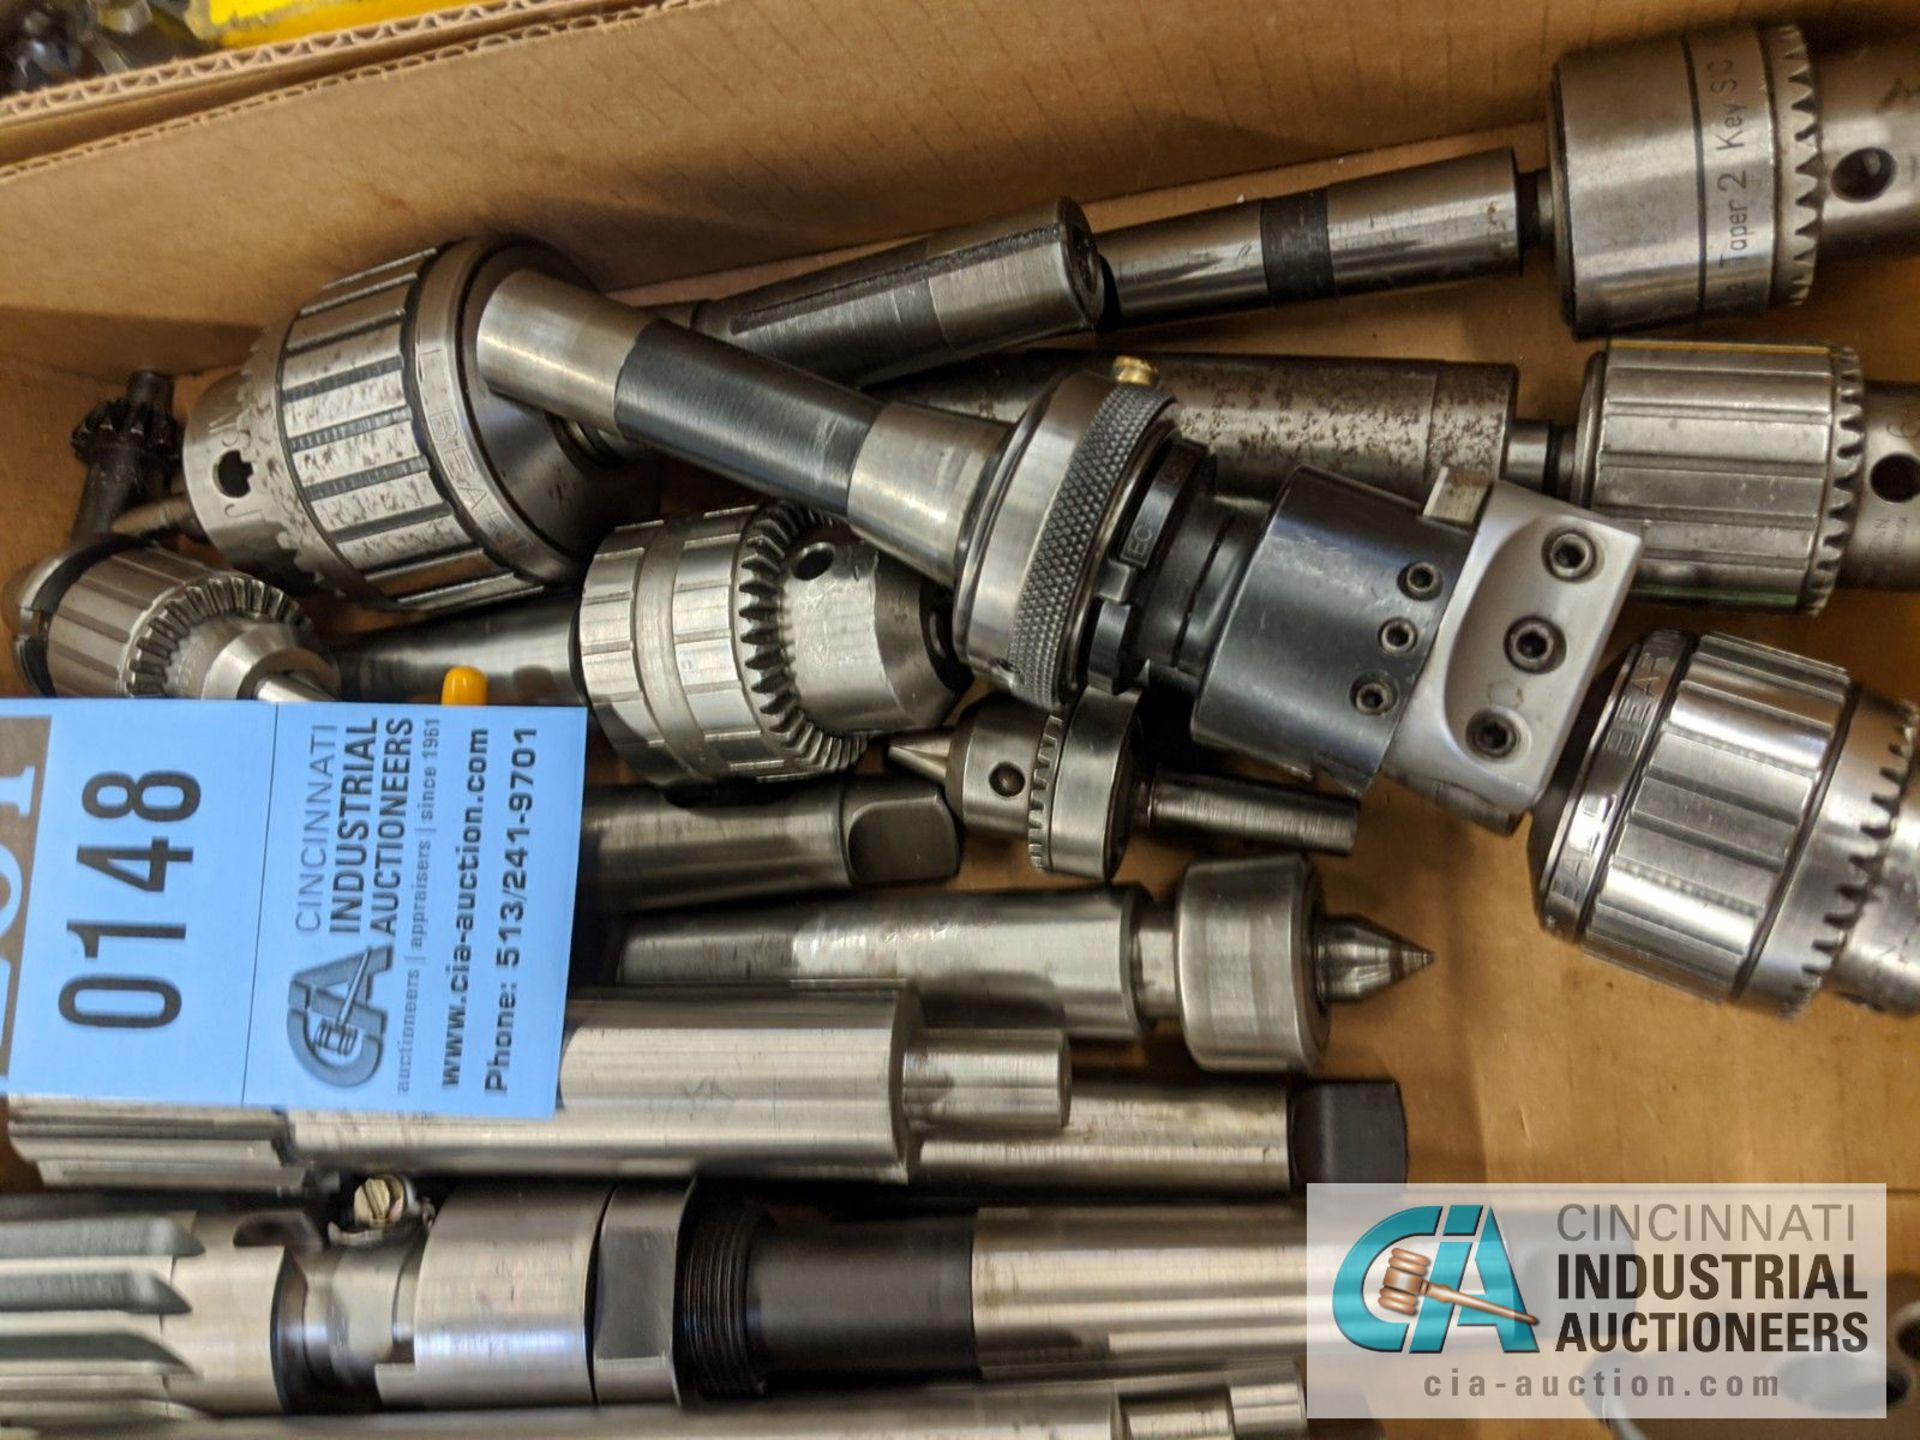 (LOT) BOX OF TOOLING; REAMERS, DRILL CHUCKS, LIVE CENTERS, ADJUSTABLE BORING HEADS - Image 2 of 4